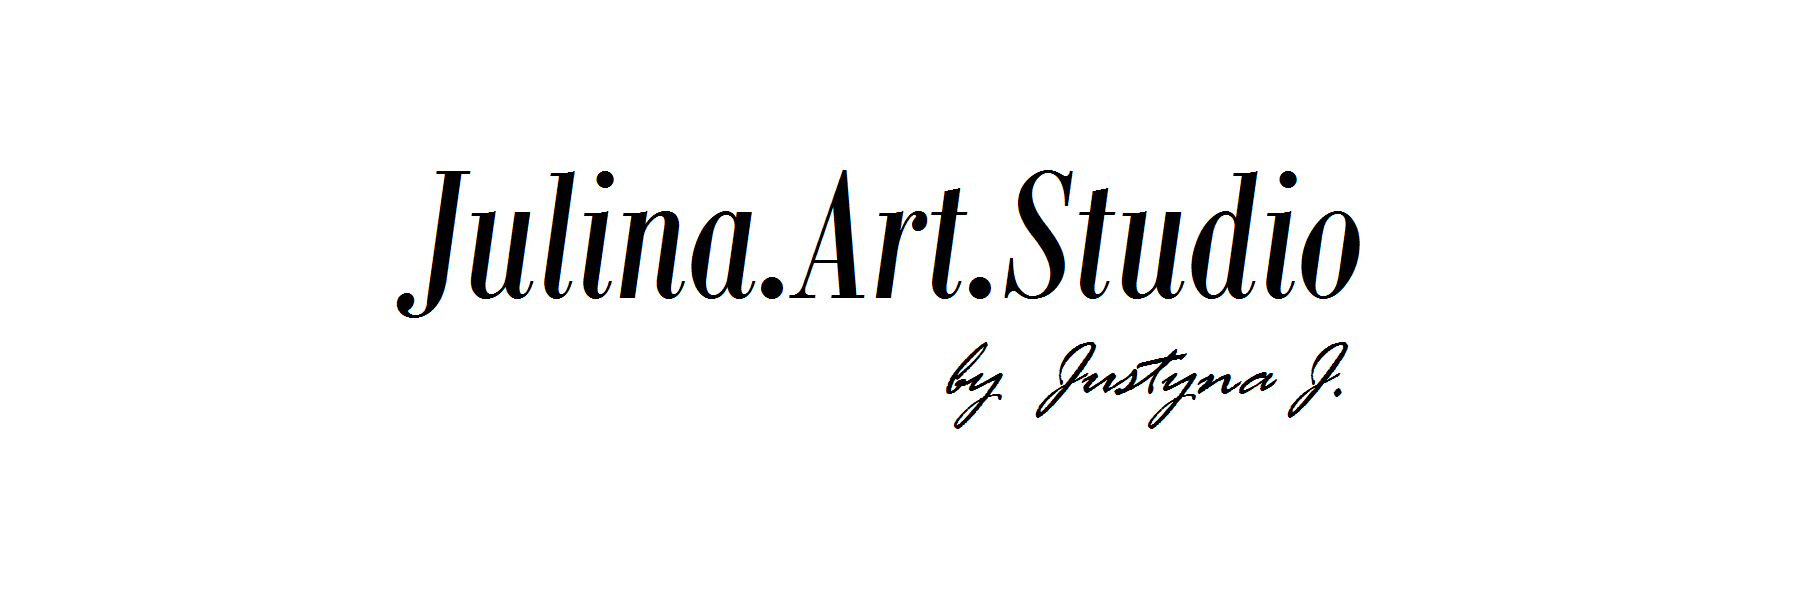 Julina.Art.Studio by Justyna J.